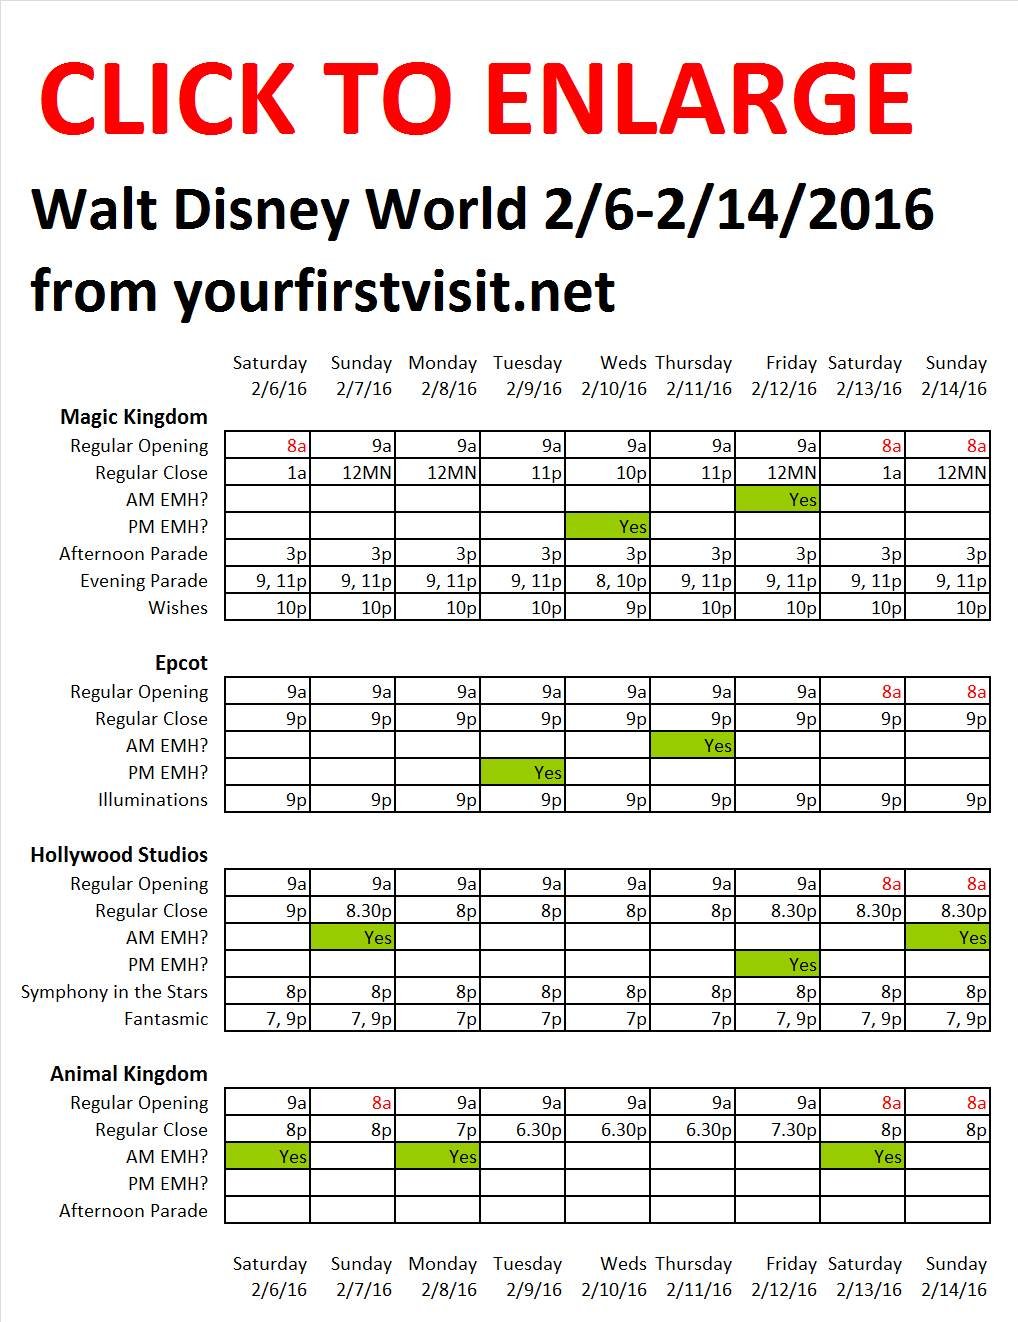 Disney World 2-6 to 2-14-2016 from yourfirstvisit.net